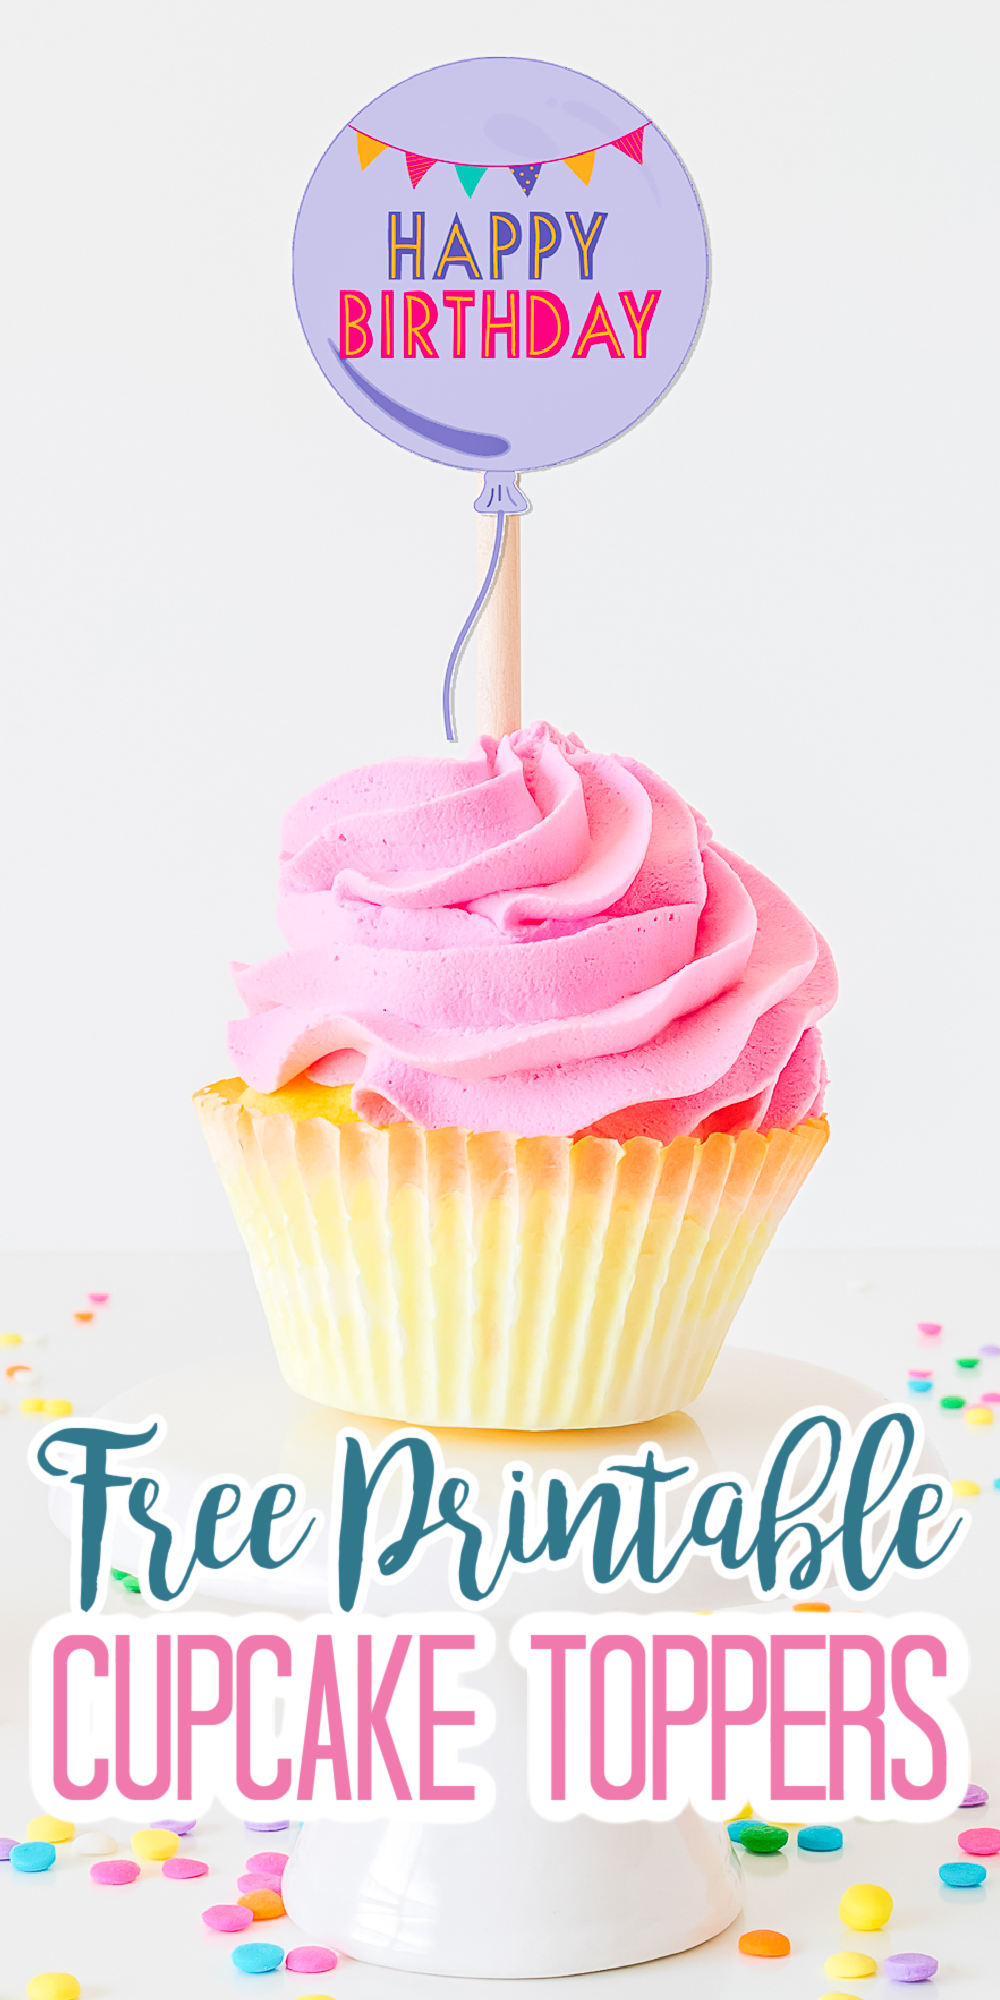 happy birthday printable toppers for cupcakes